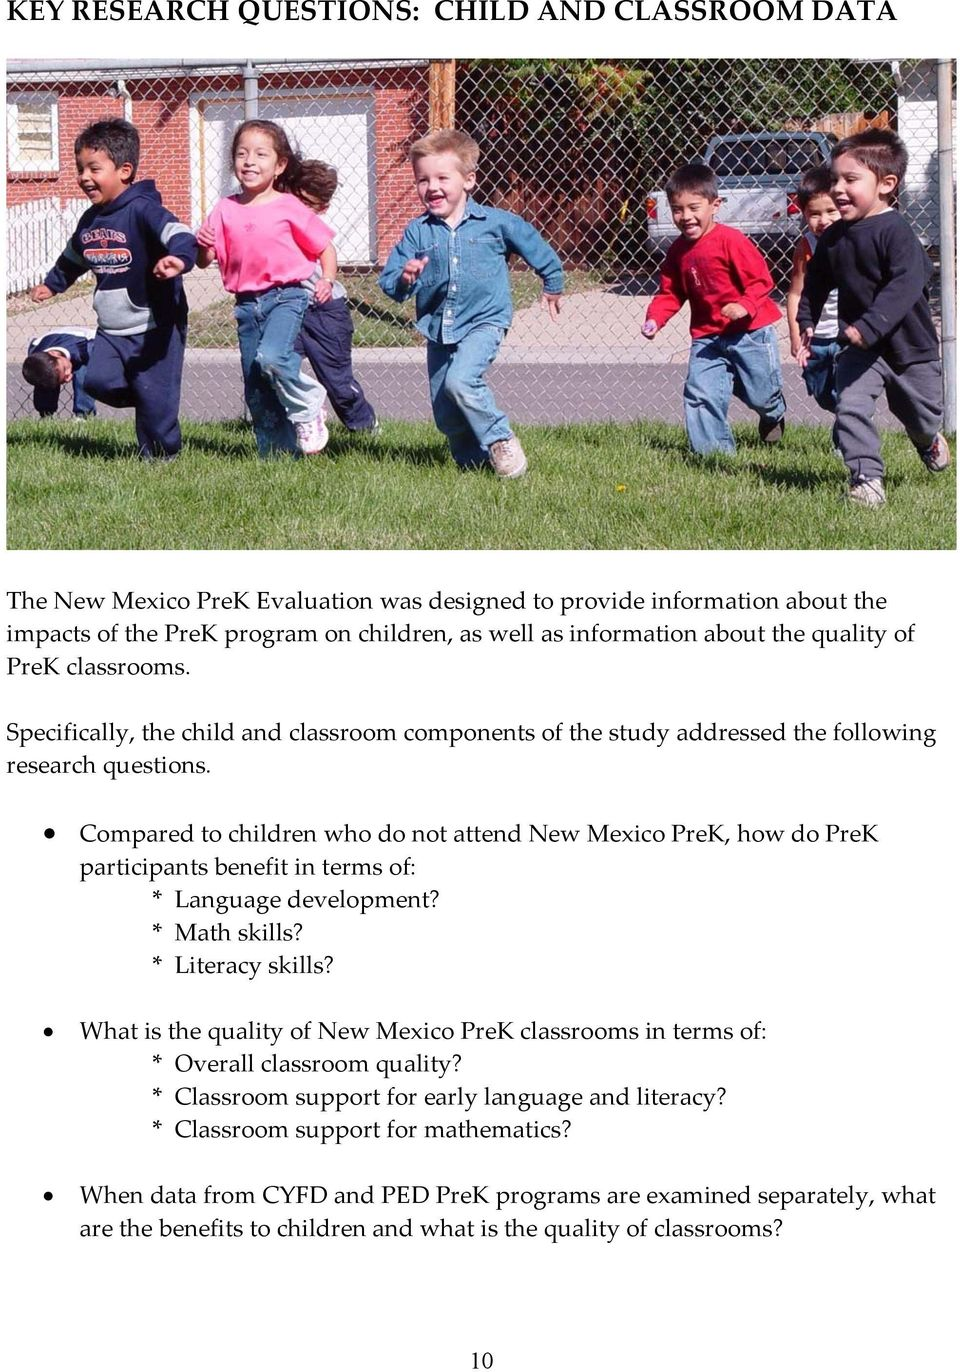 Compared to children who do not attend New Mexico PreK, how do PreK participants benefit in terms of: * Language development? * Math skills? * Literacy skills?